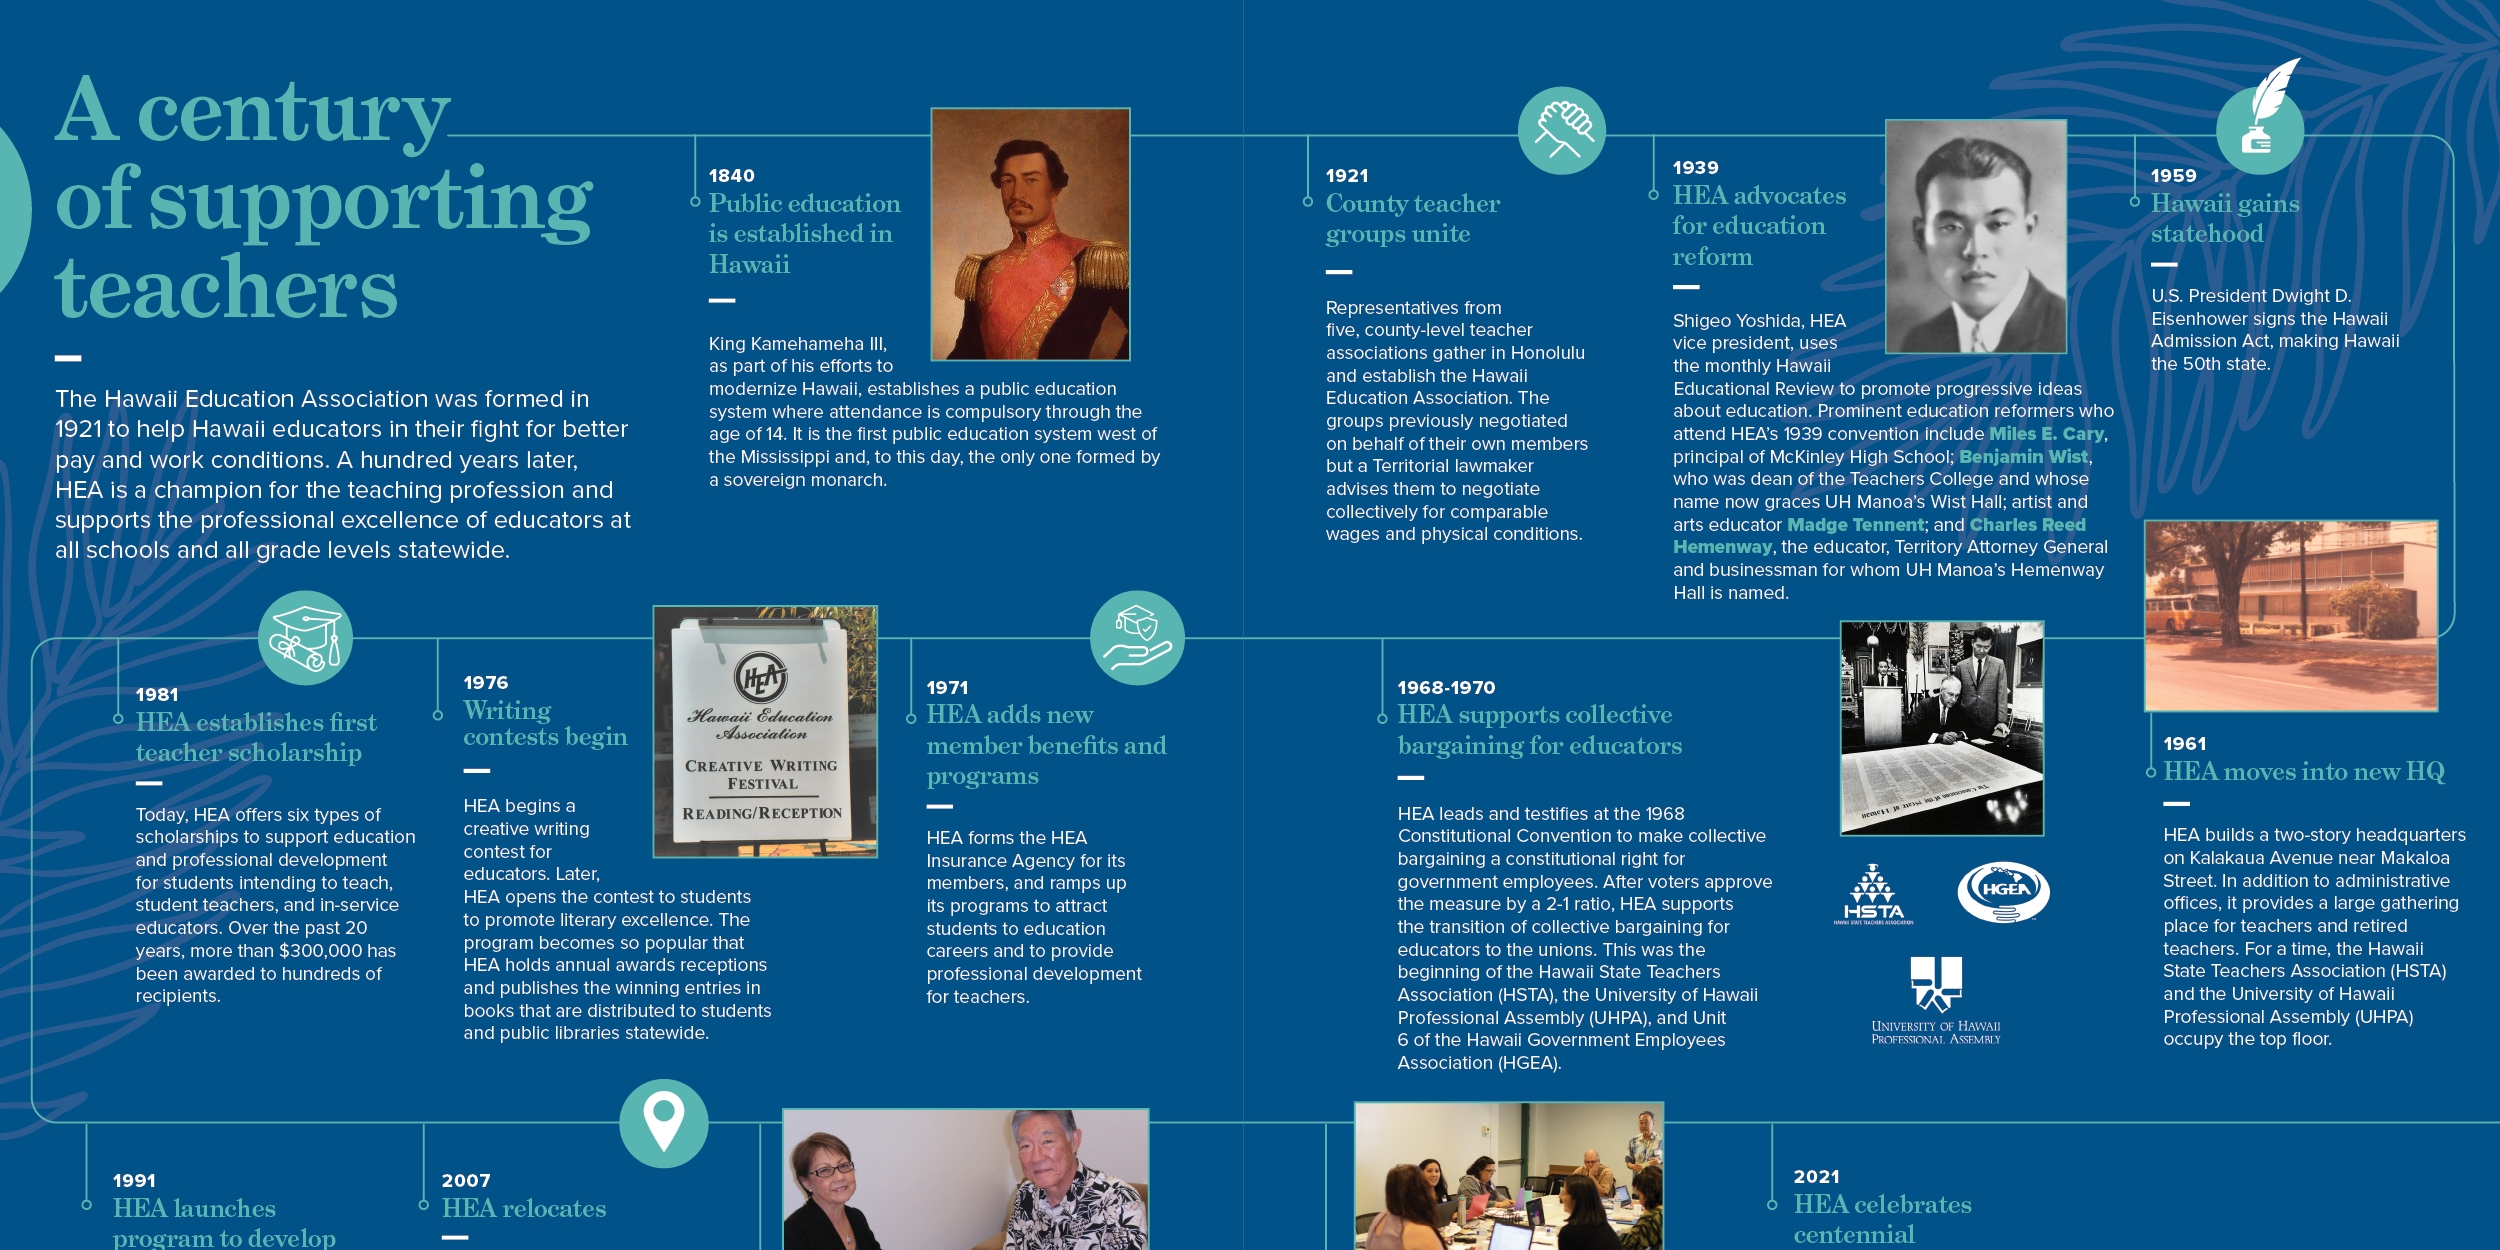 HEA Celebrates 100 Years of Supporting Educators